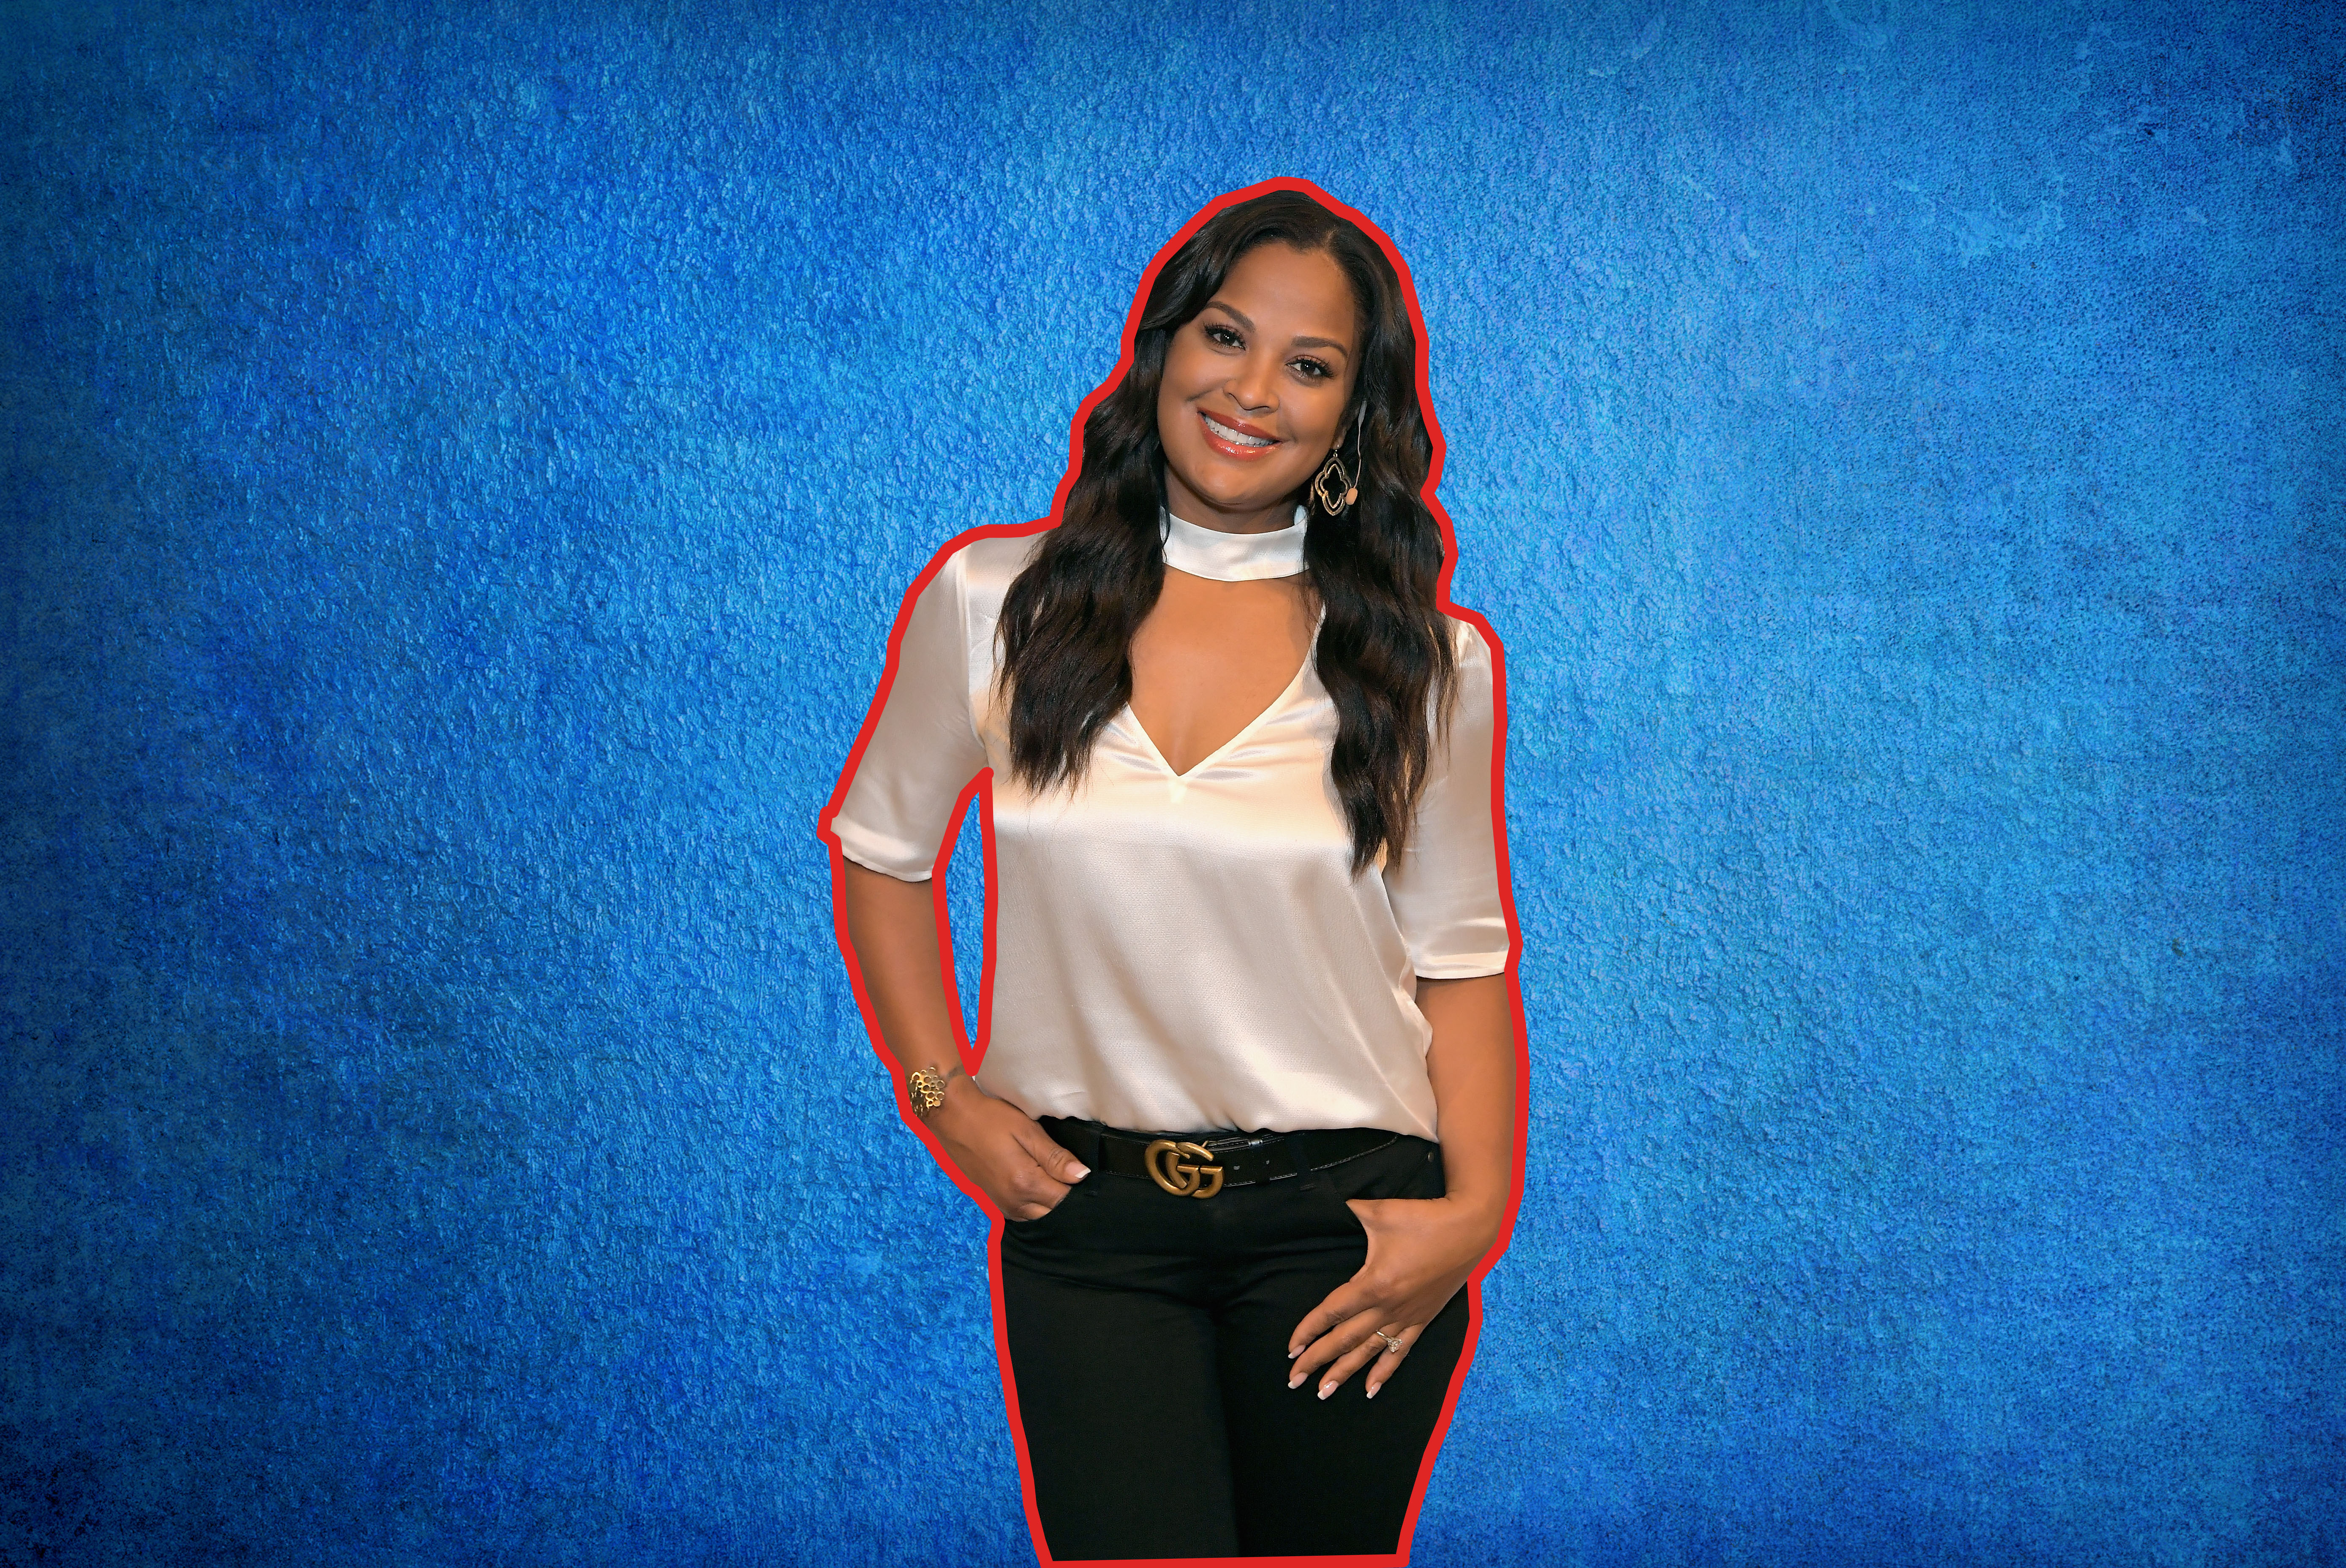 Laila Ali told us why she gets a mani/pedi every two weeks and the advice from her dad that she lives by